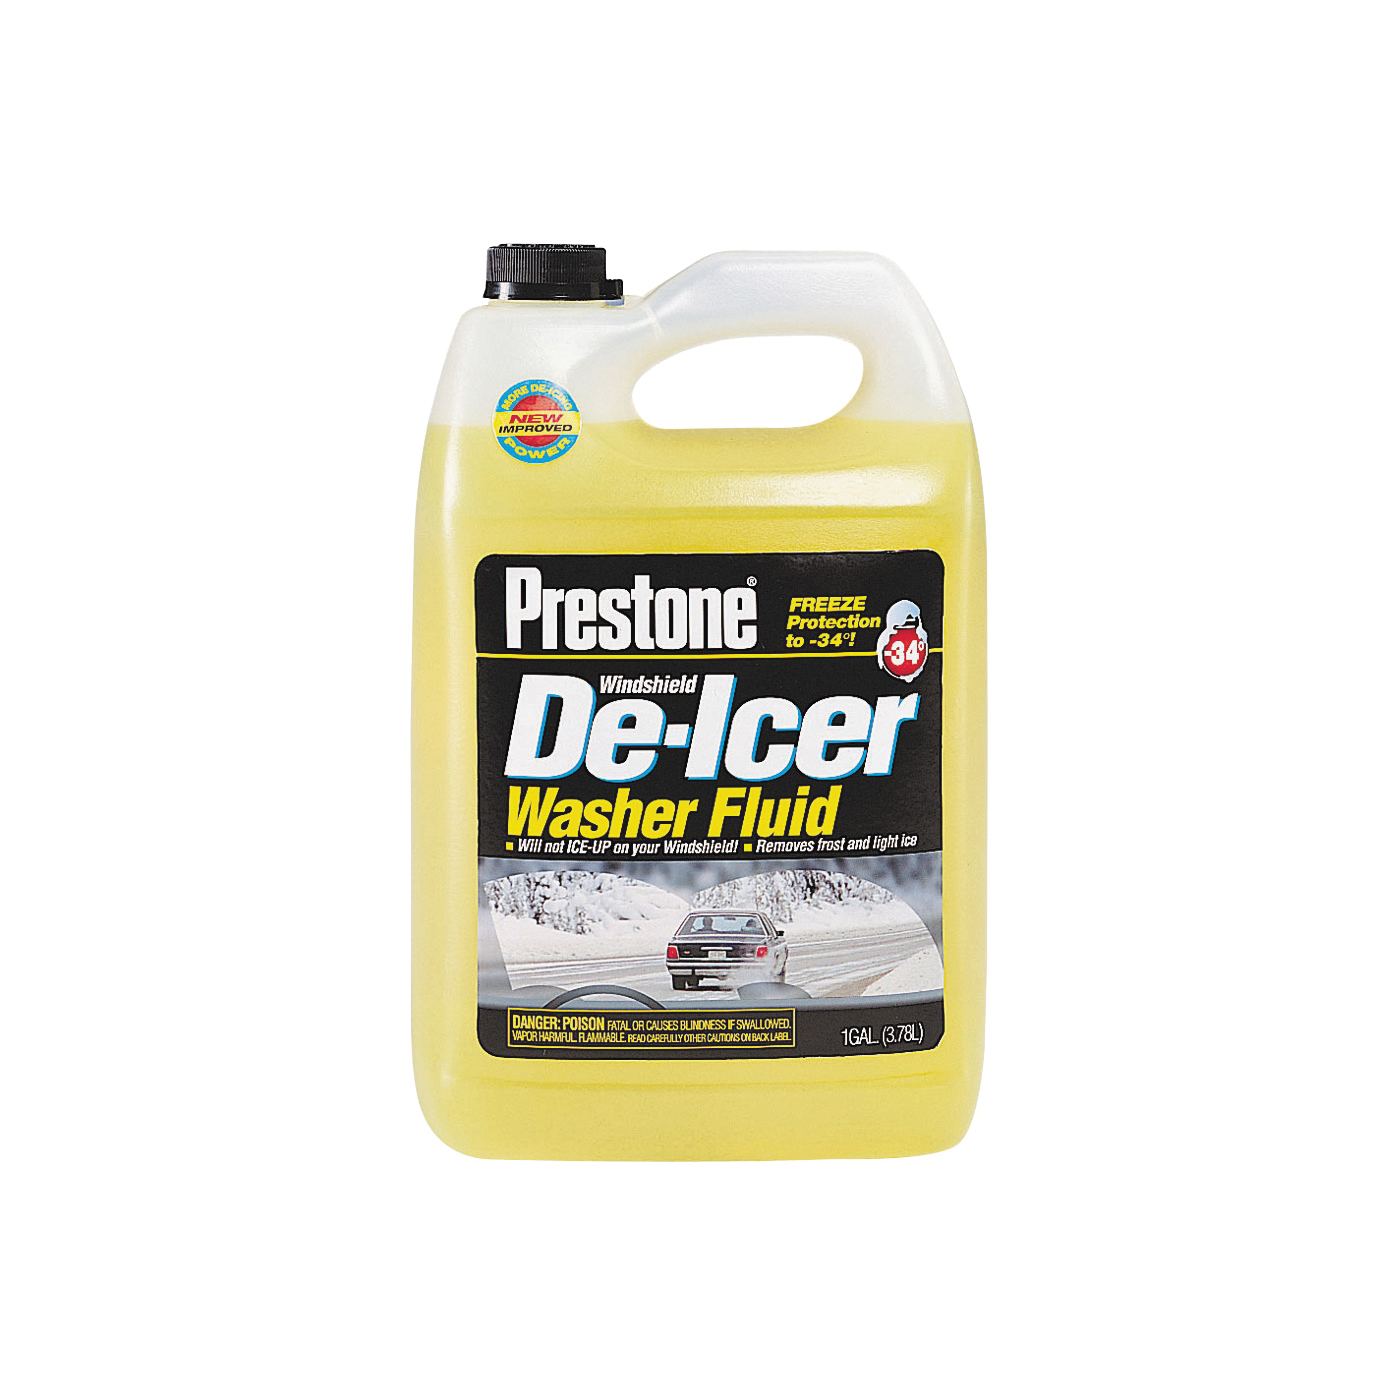 Picture of Prestone AS-250 Windshield Washer Fluid Clear Yellow, 1 gal Package, Bottle